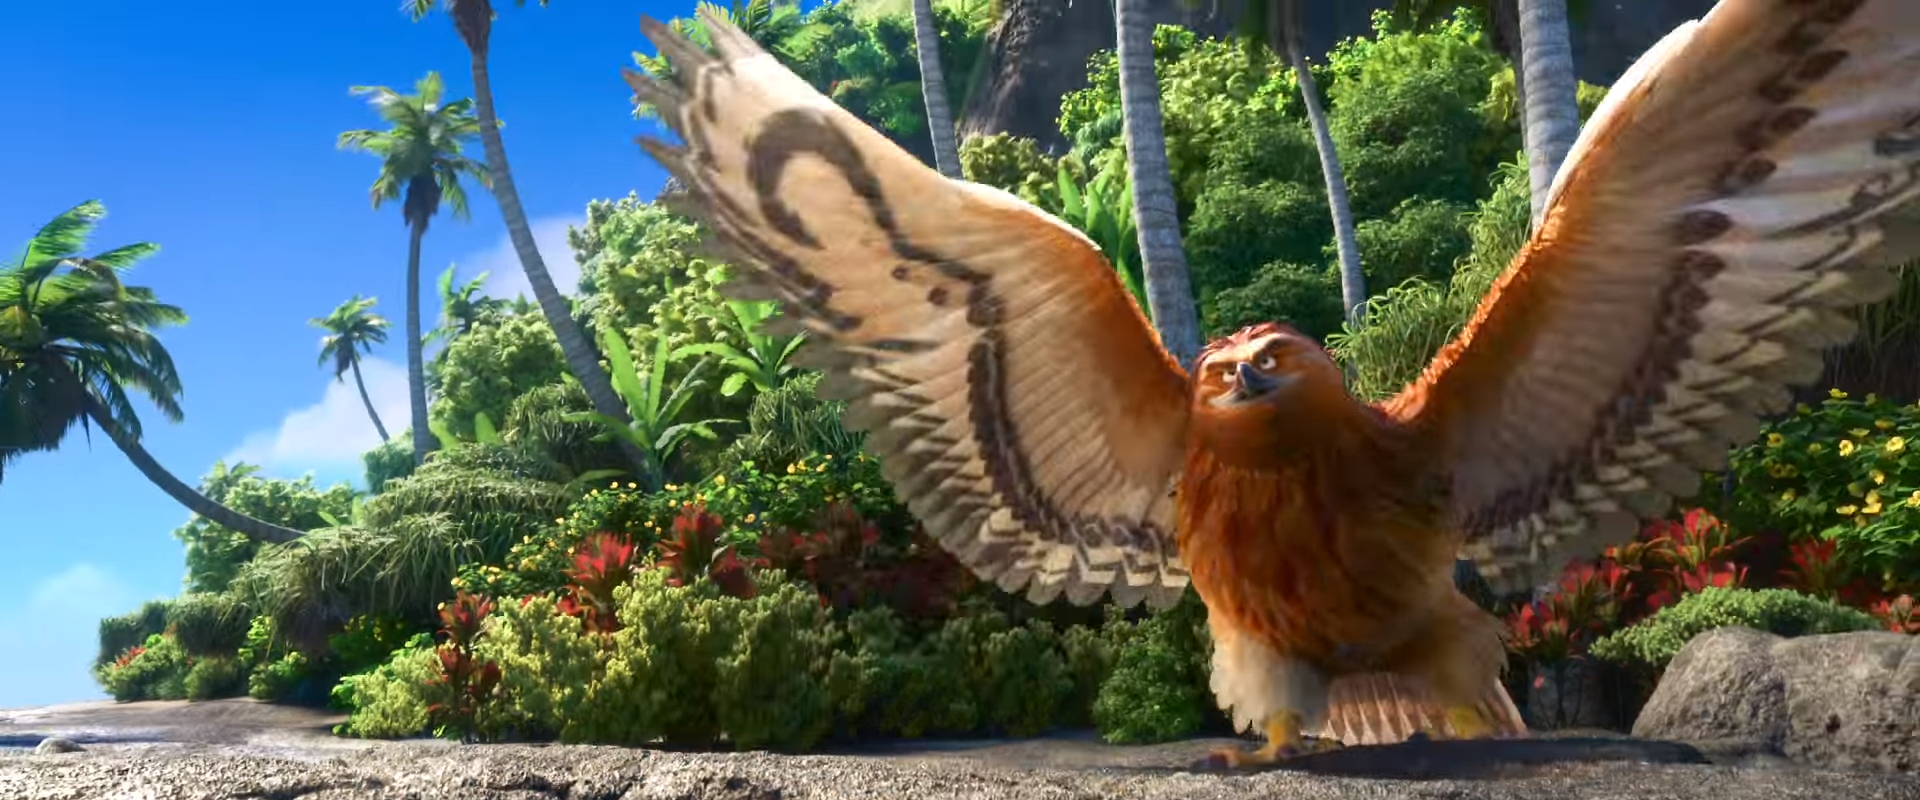 moana_trailer_maui_bird